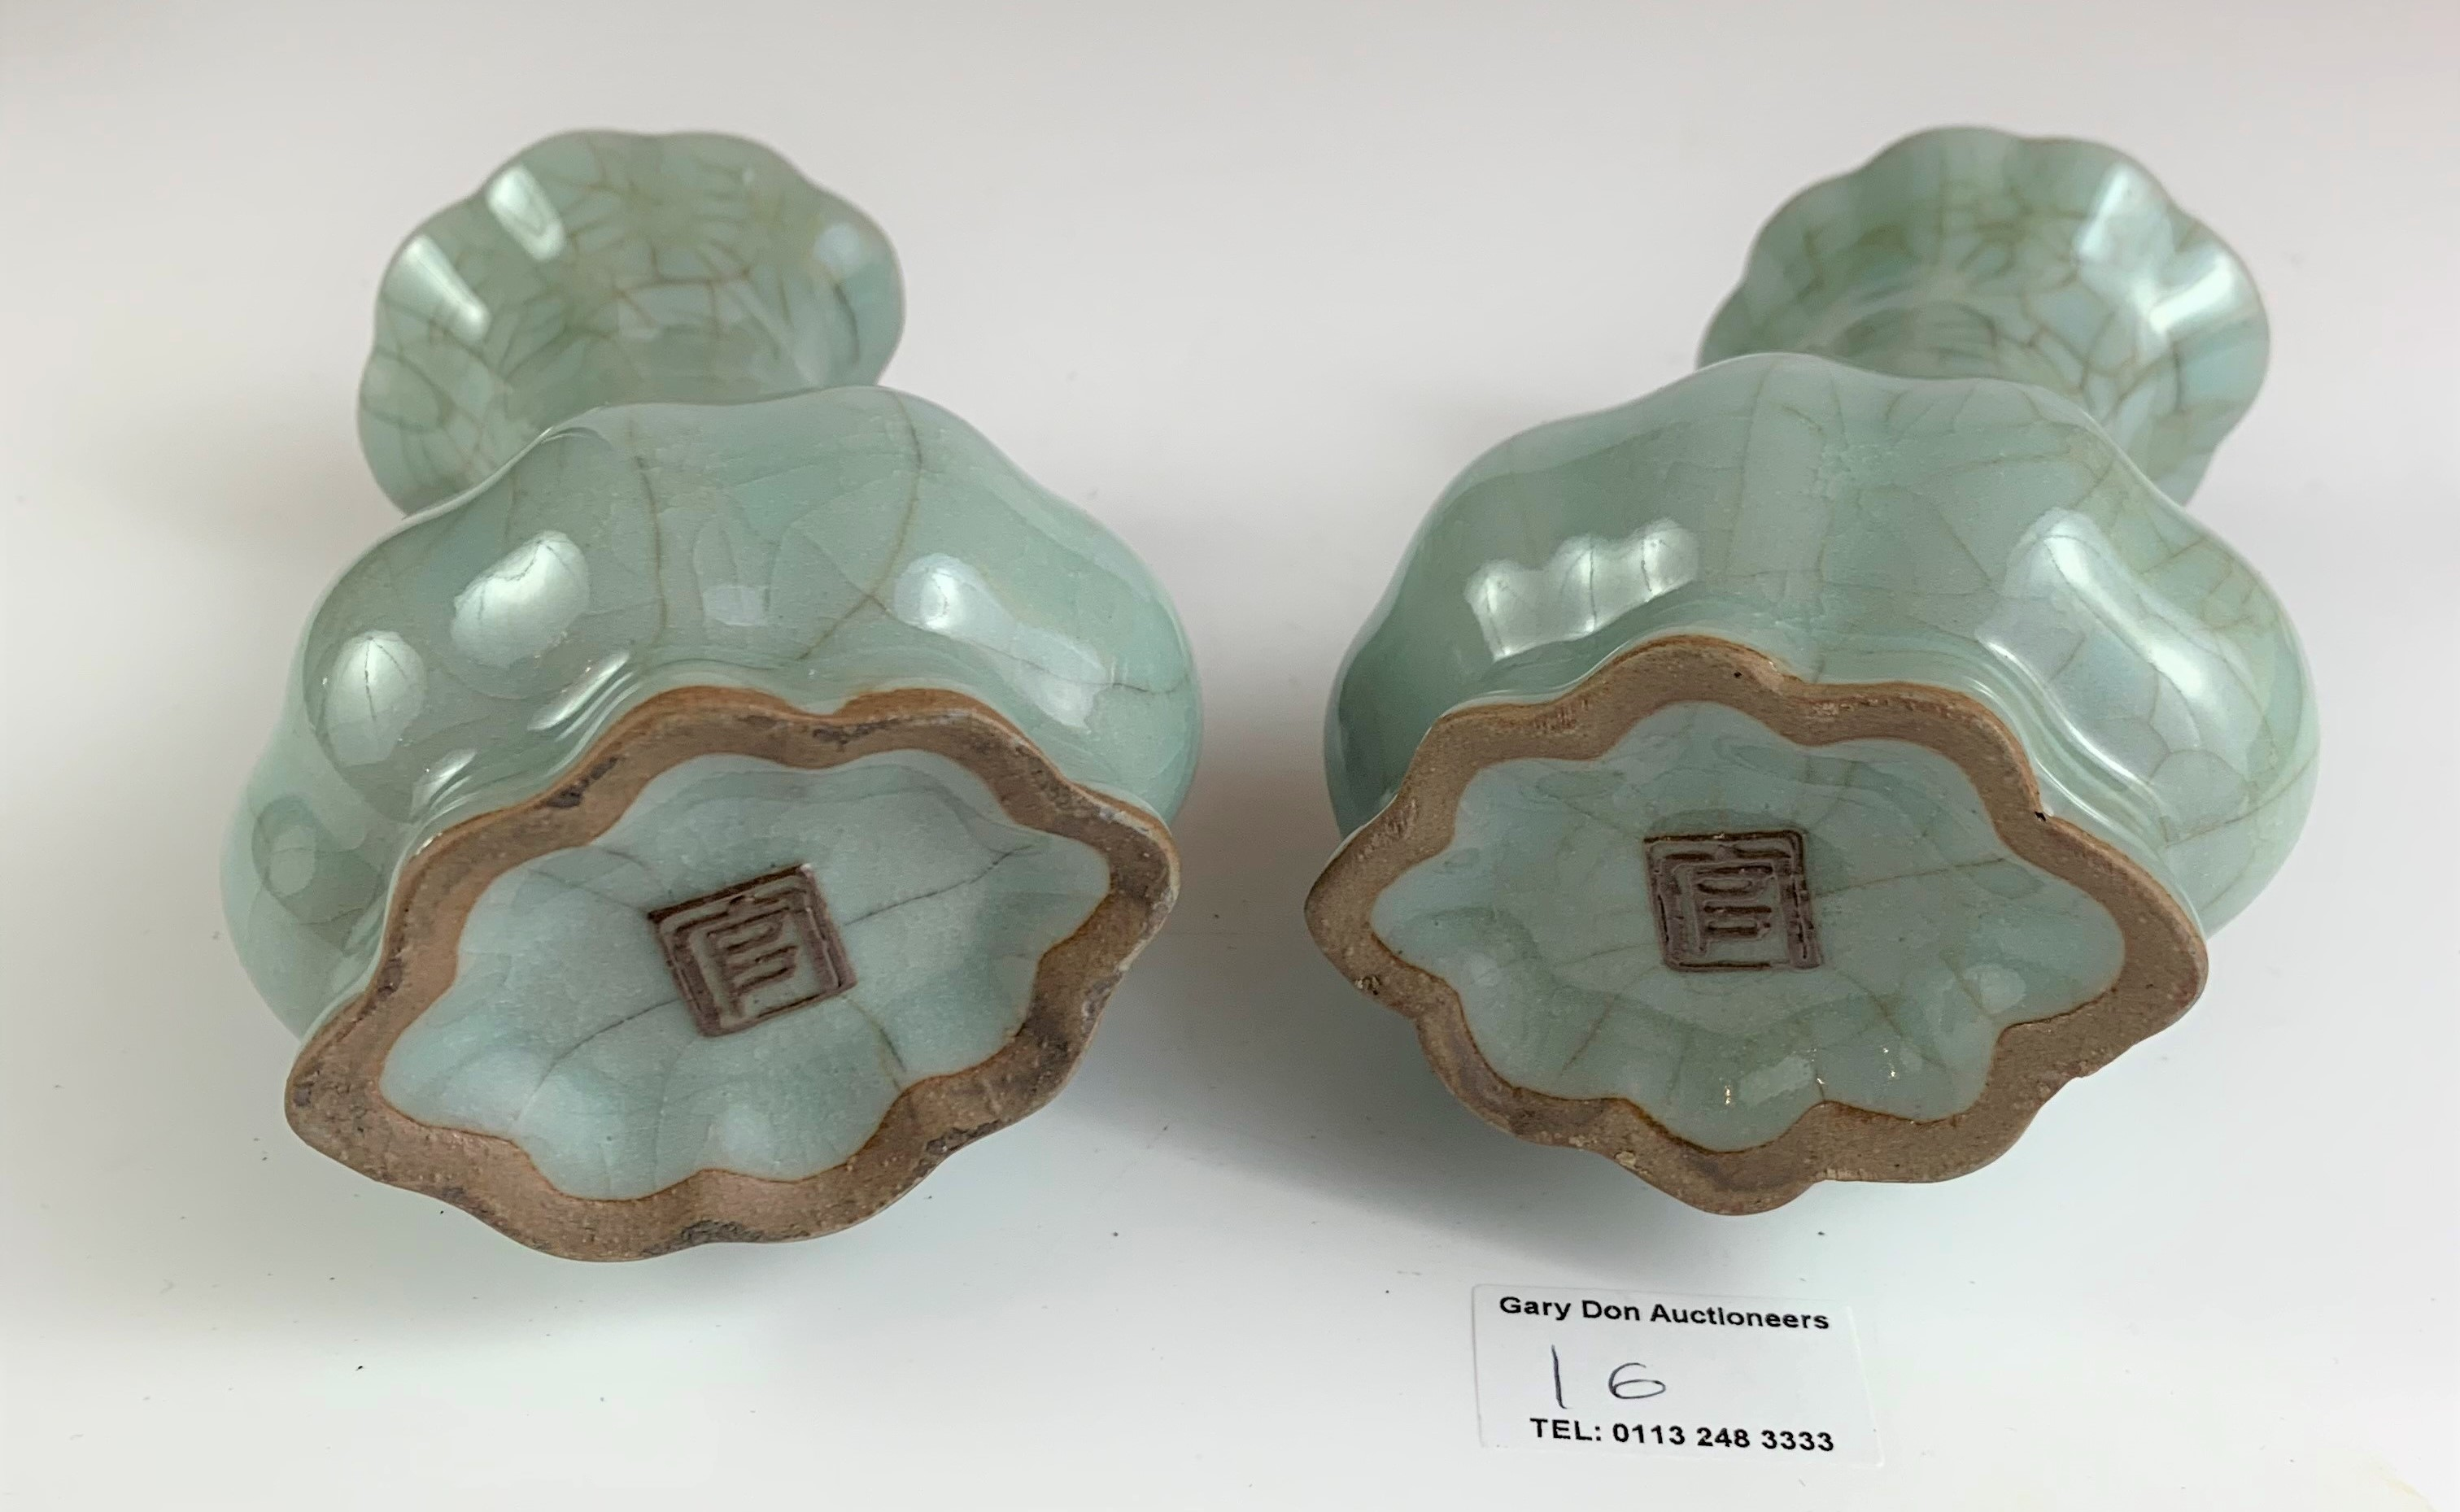 """Pair of Chinese vases in wooden presentation box marked Longquan Royal Kiln China. Vases 6"""" high, - Image 8 of 8"""